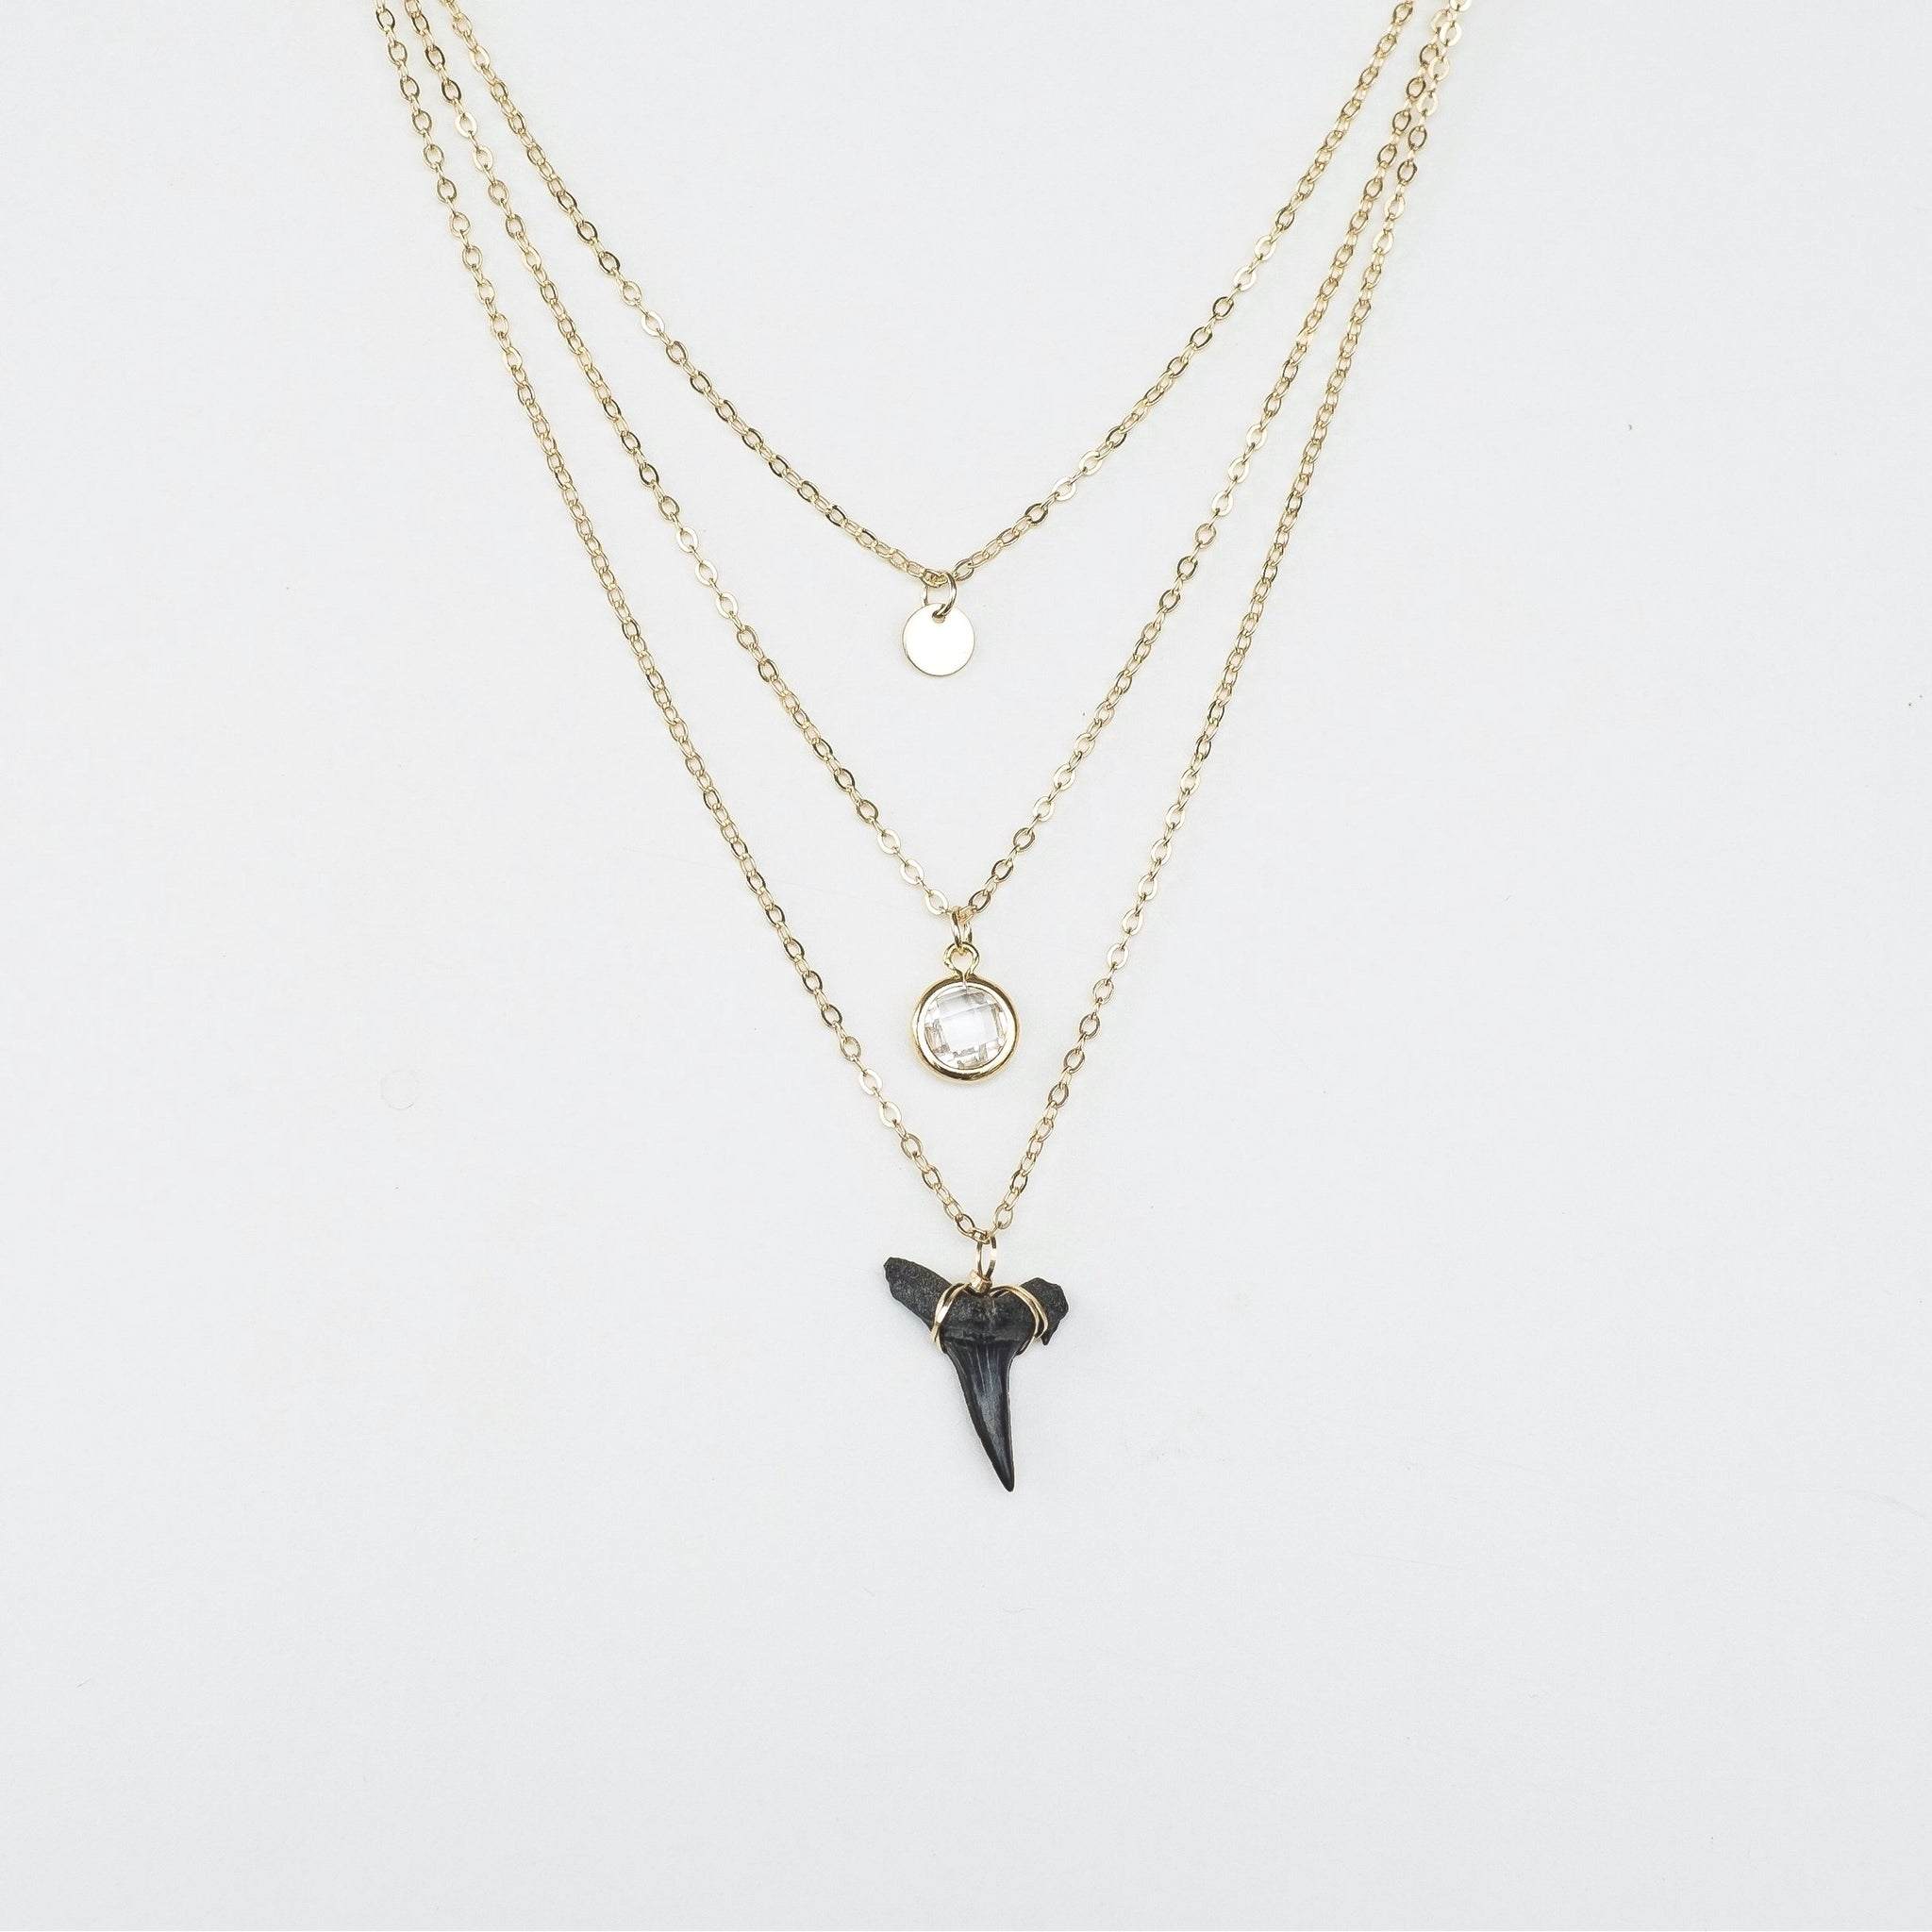 real shark tooth dainty layering necklace - natural shark tooth fossil from prehistoric sand tiger shark; elegant triple layer shark tooth necklace